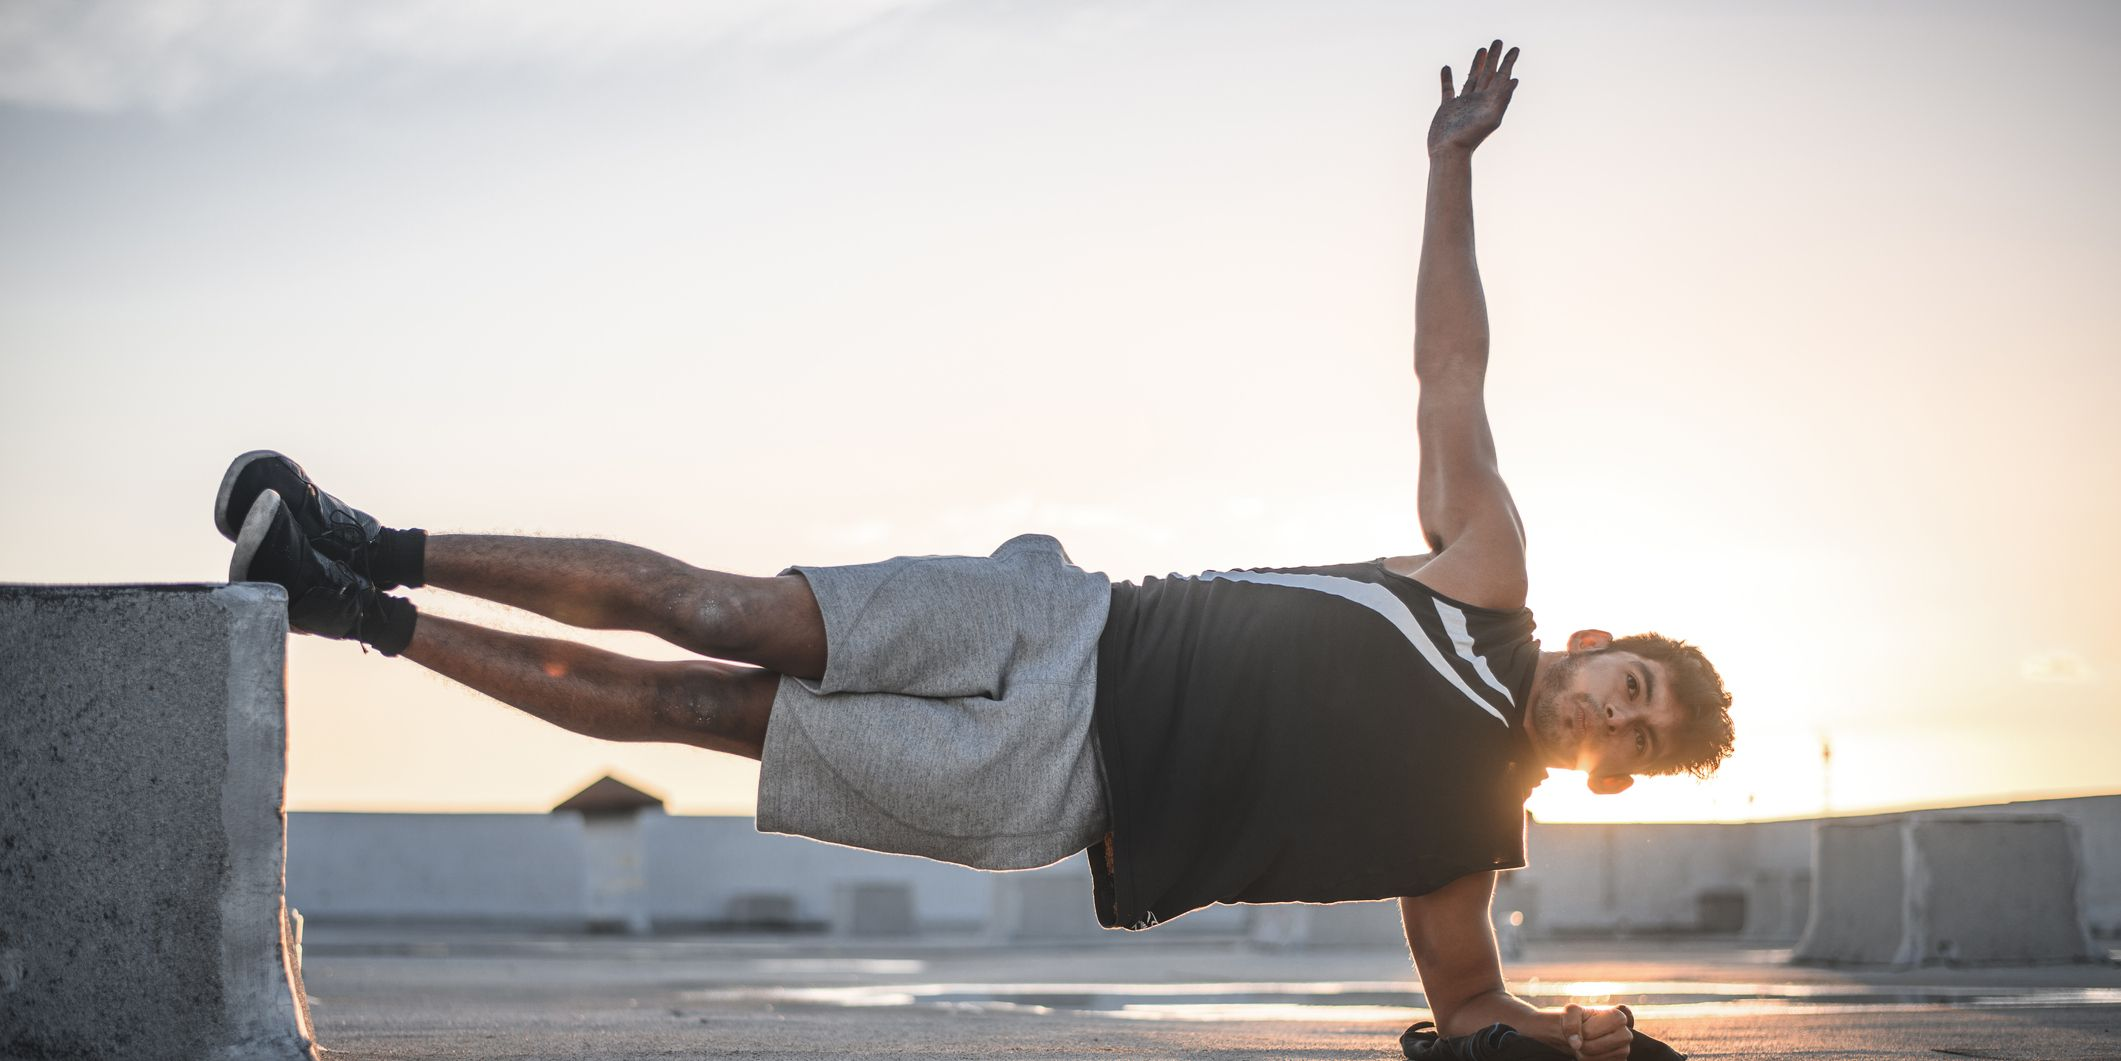 Determined young man exercising in plank position